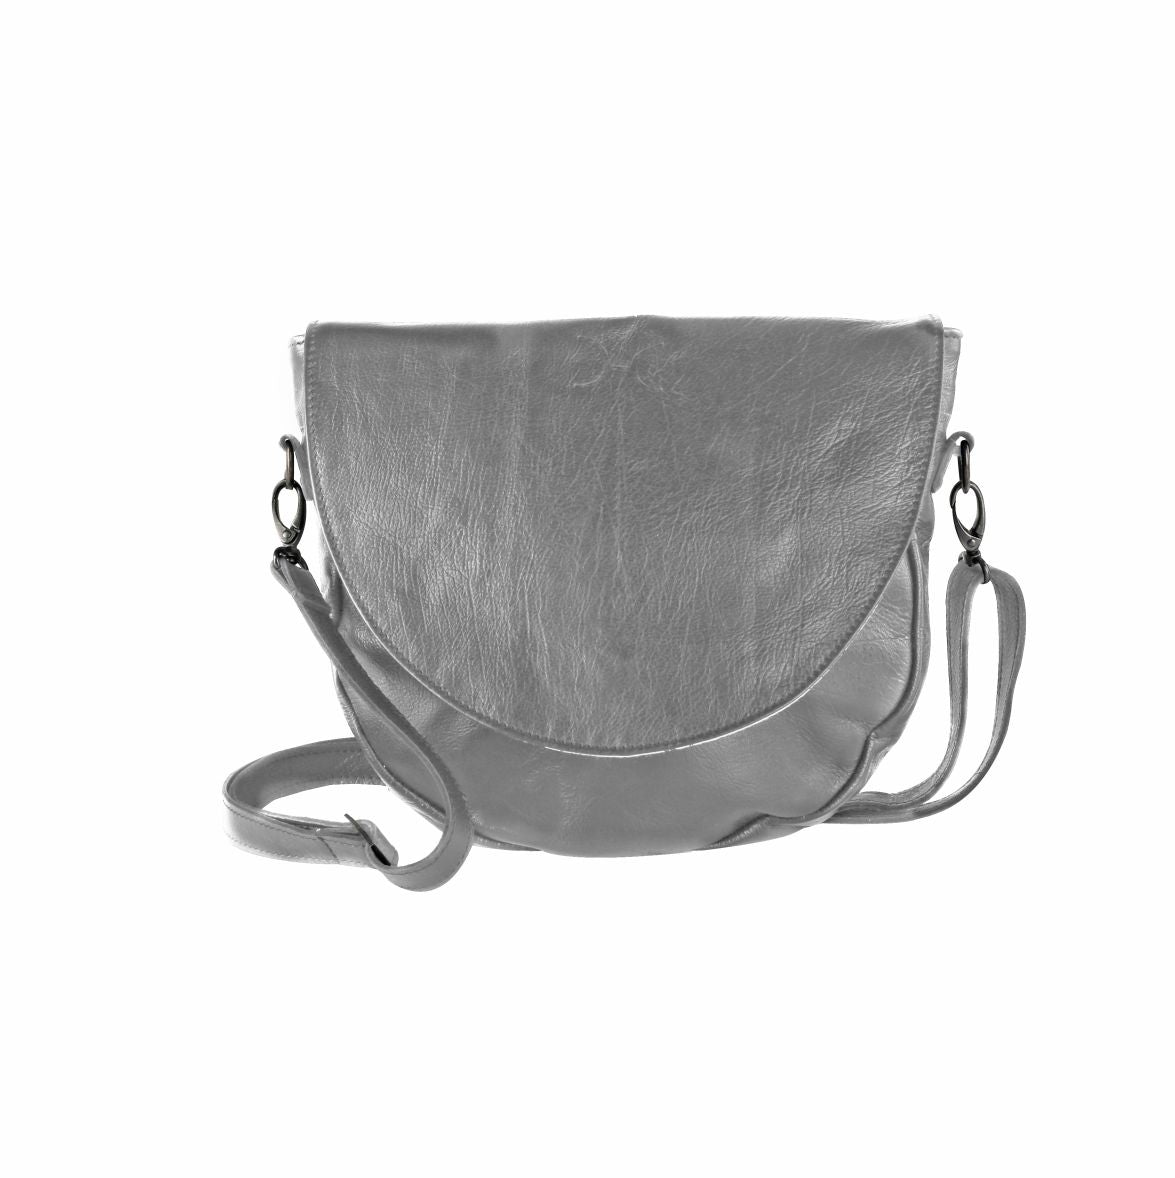 Thandana Messenger Saddle Sling Bag - Grey - Zufrique Boutique